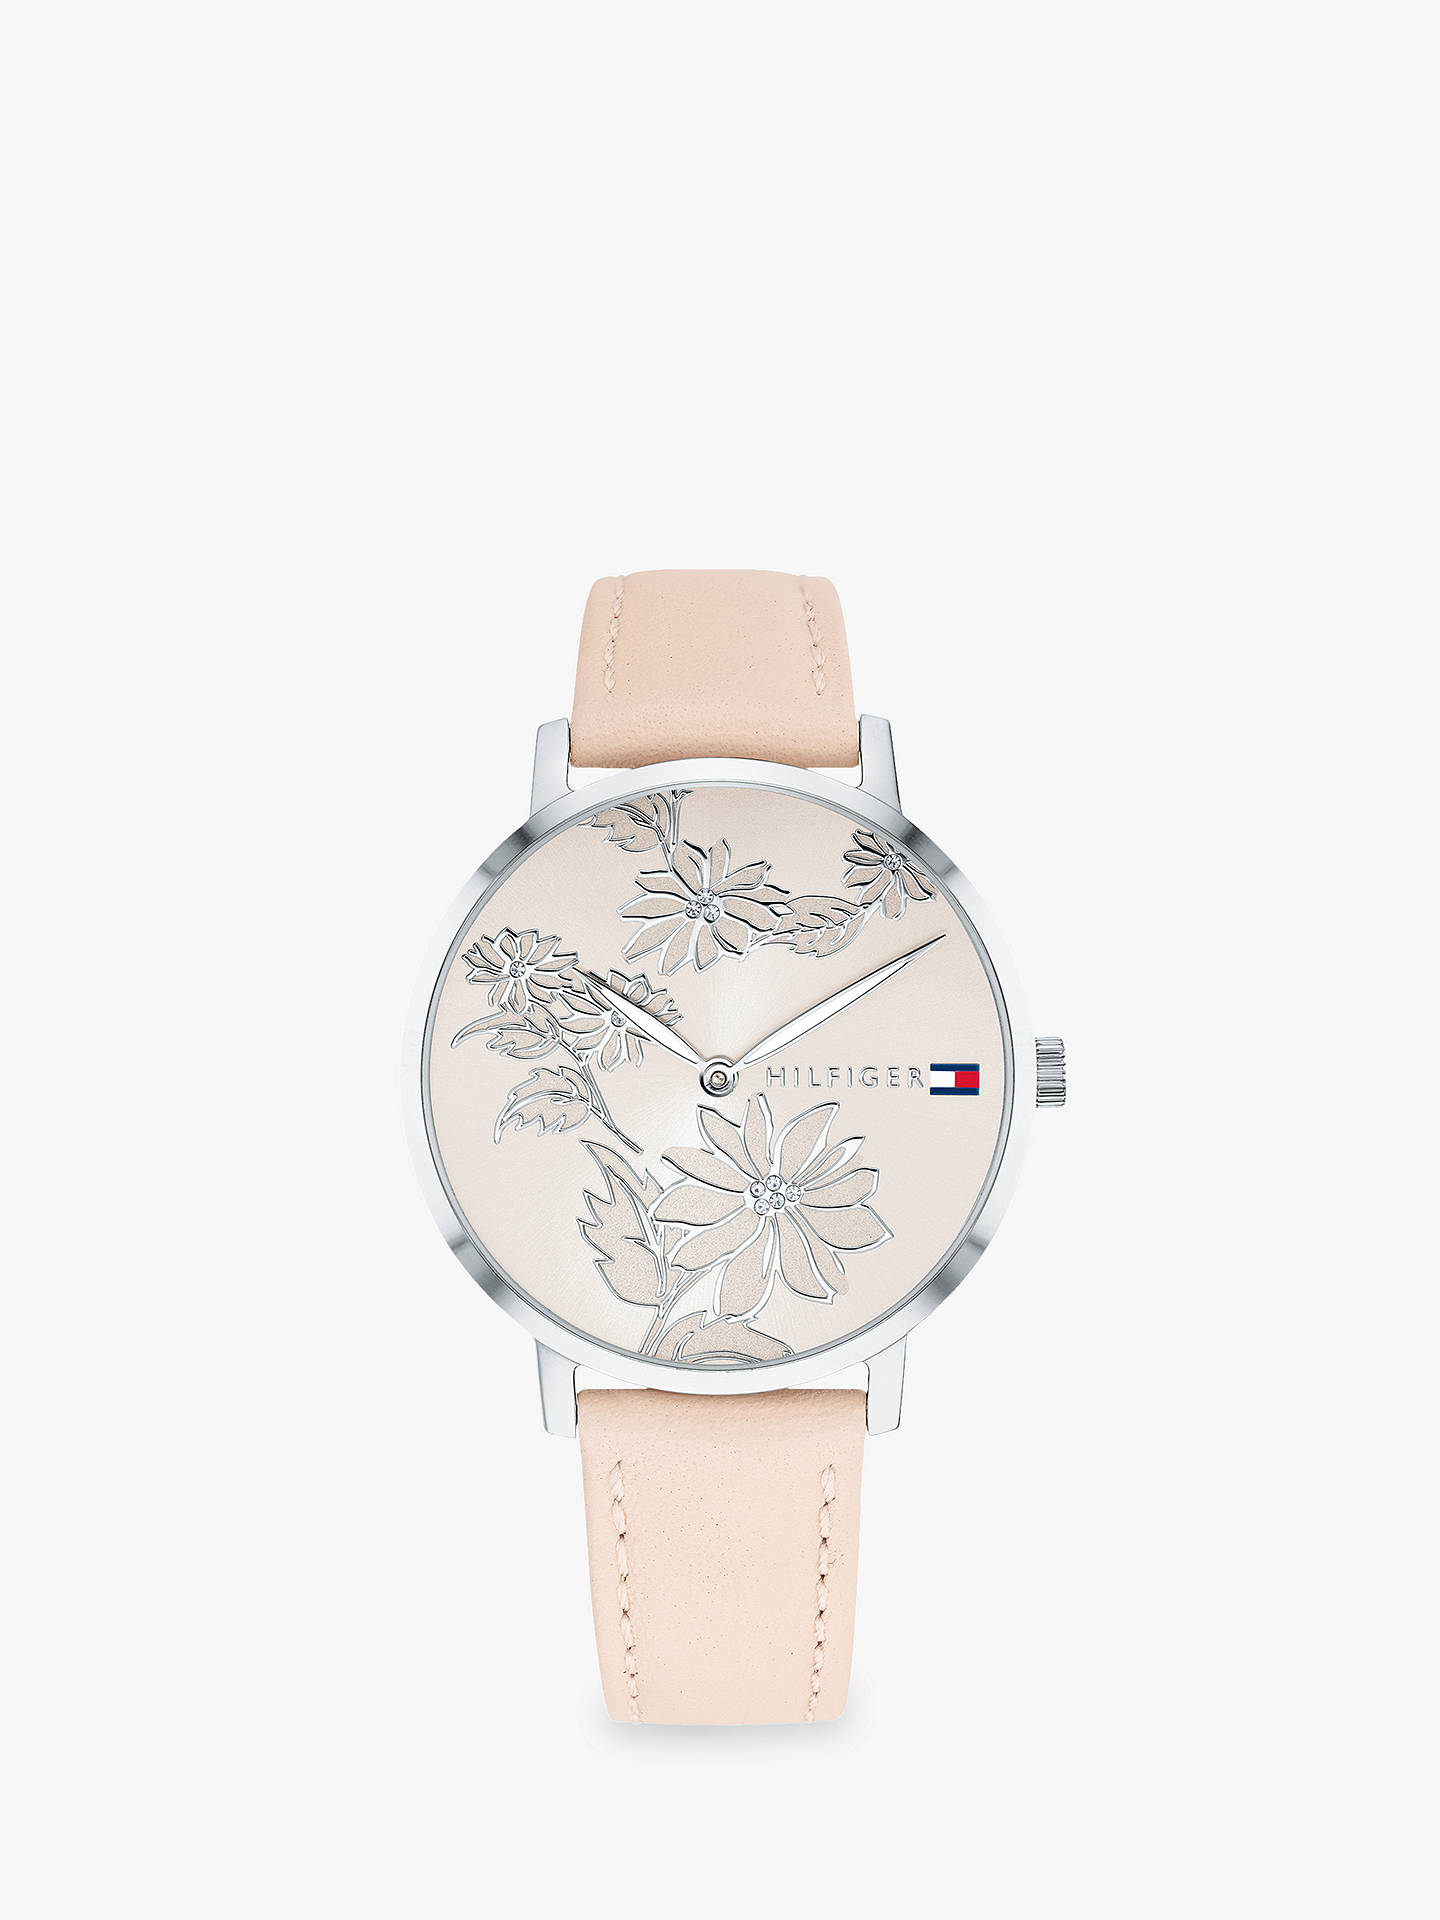 BuyTommy Hilfiger 1781919 Women s Pippa Floral Dial Leather Strap Watch,  Blush Online at johnlewis. 46a3a539a4